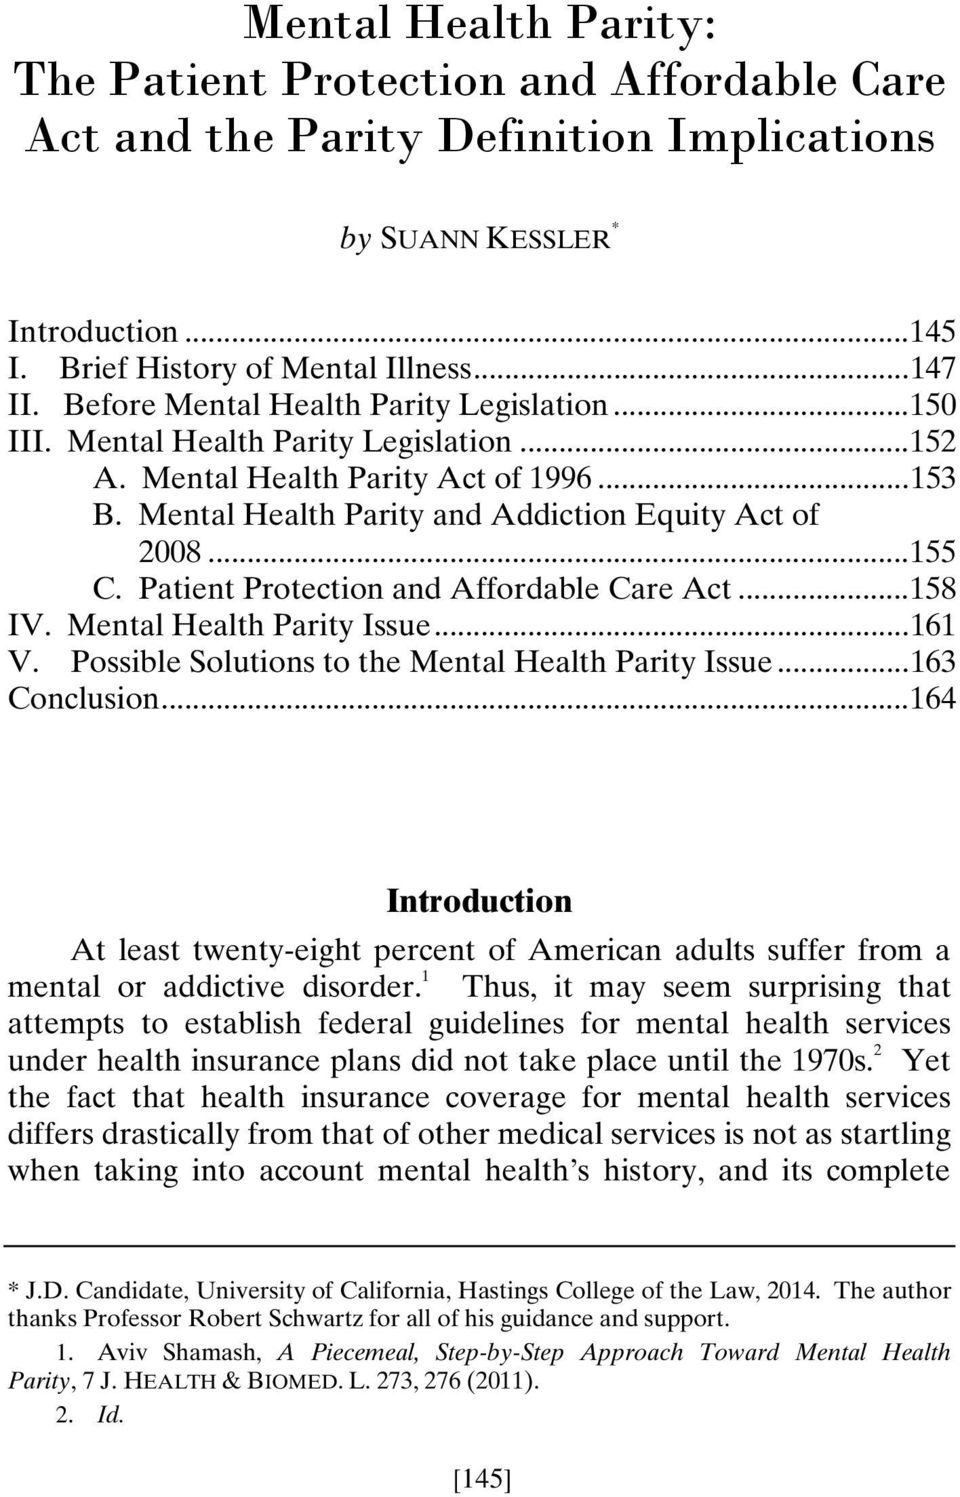 Patient Protection and Affordable Care Act... 158 IV. Mental Health Parity Issue... 161 V. Possible Solutions to the Mental Health Parity Issue... 163 Conclusion.